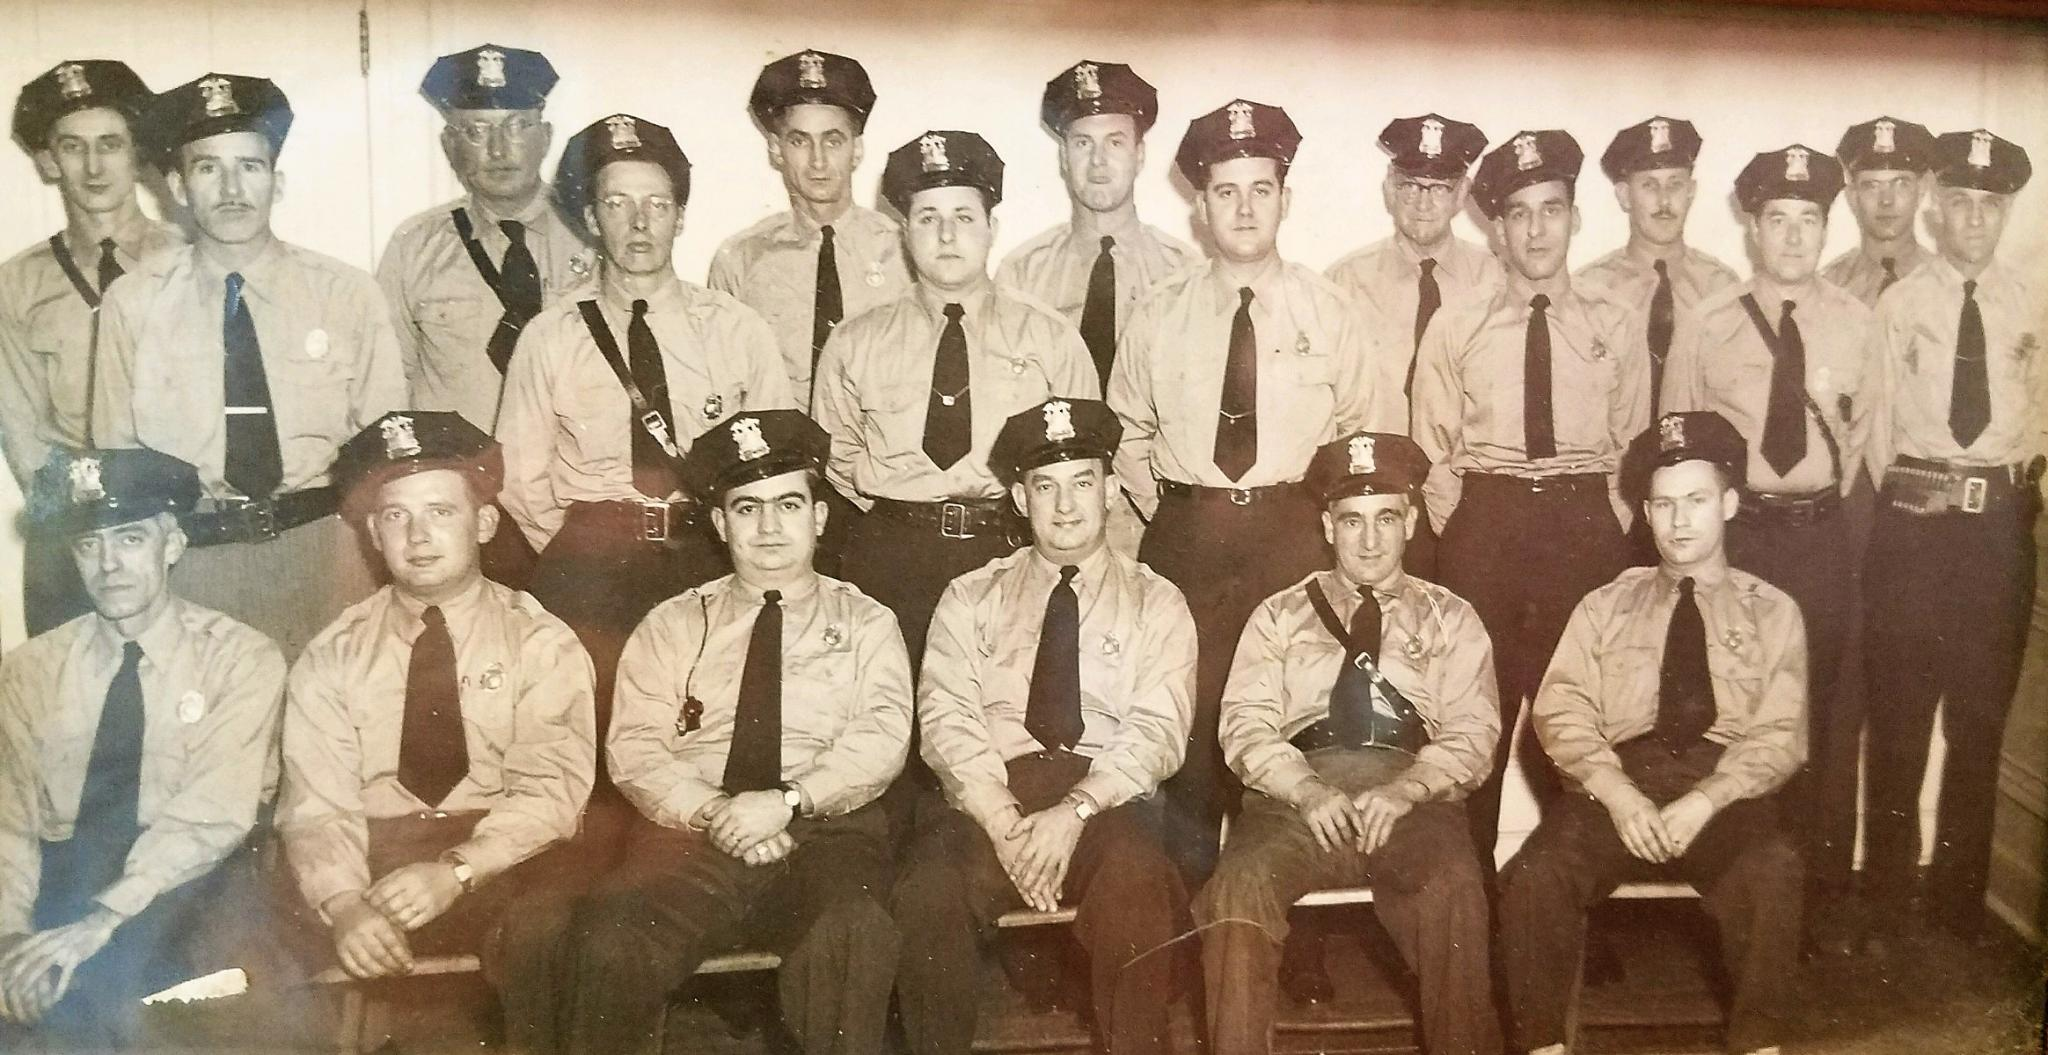 Photo provided by Westfield Police Department Officer Barry Meleen. Pictured is circa 1960s photo of the Westfield policemen, both regular and auxiliary. Only one is identified, that of Robert Peterson (back row, right end with ammunition belt), Meleen's grandfather, who was police chief for many years until his retirement in 1968.